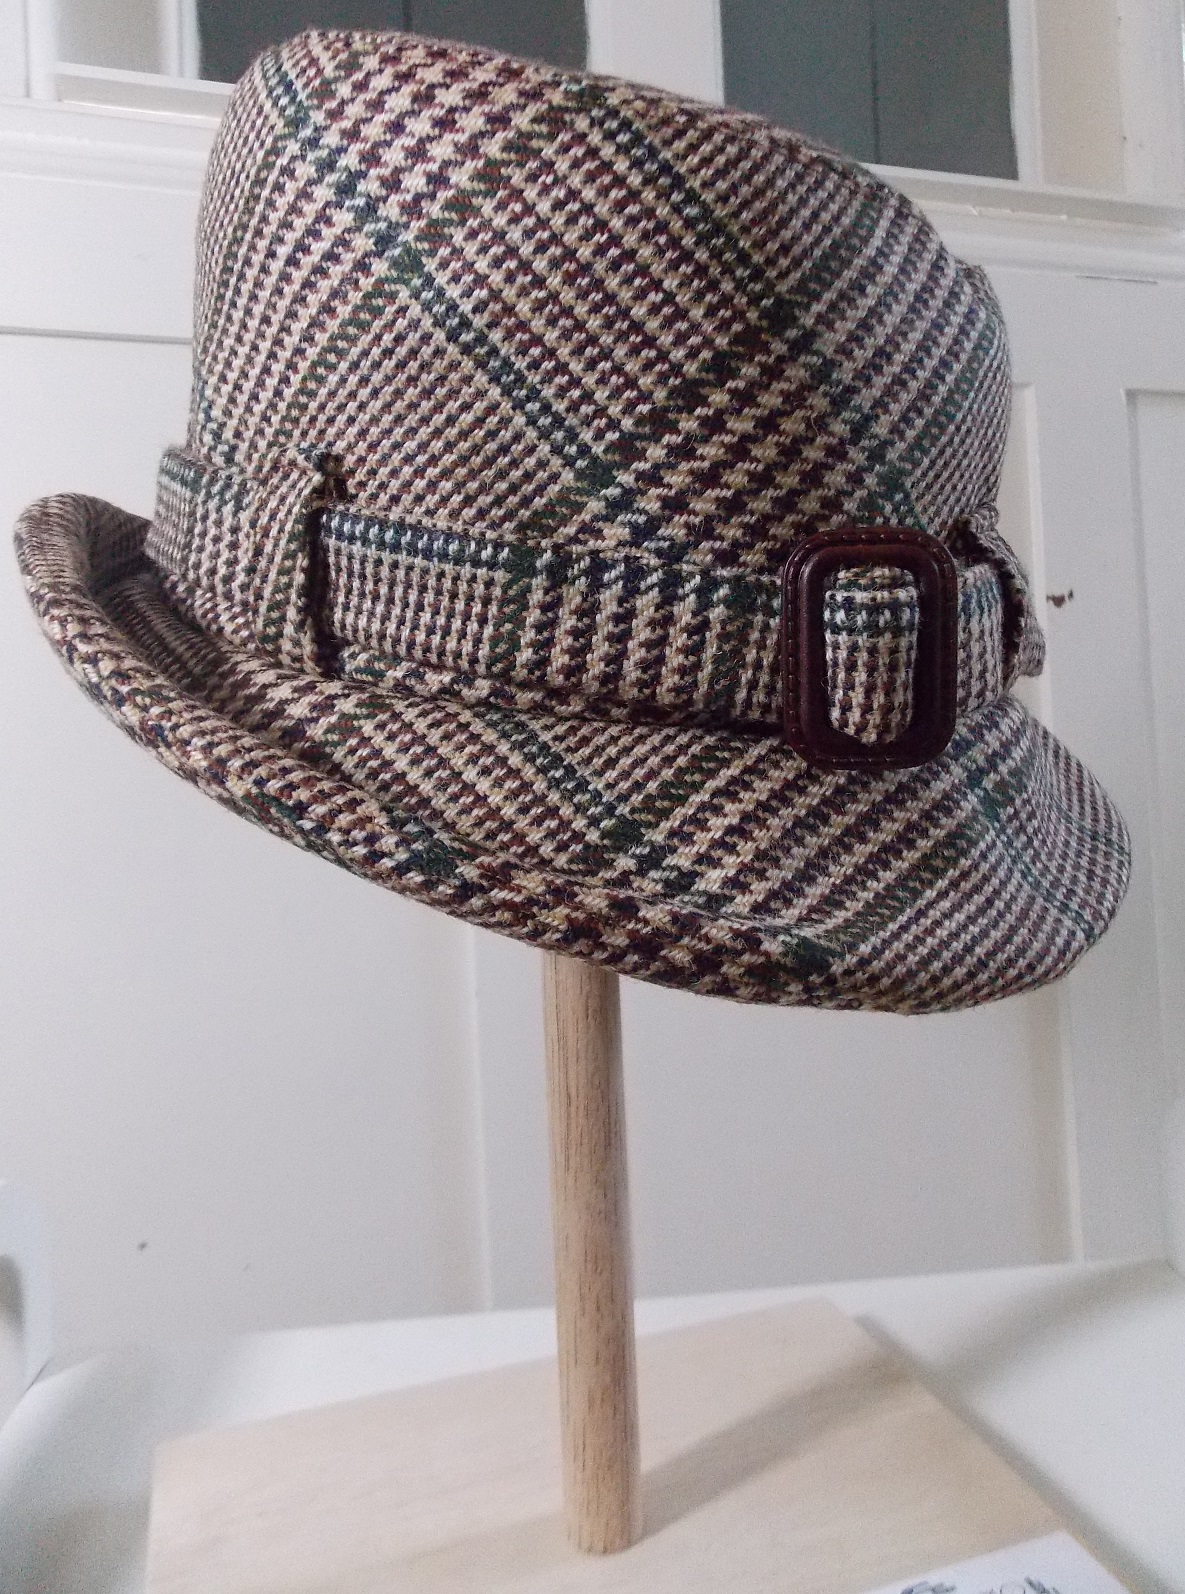 from the front with right brim up